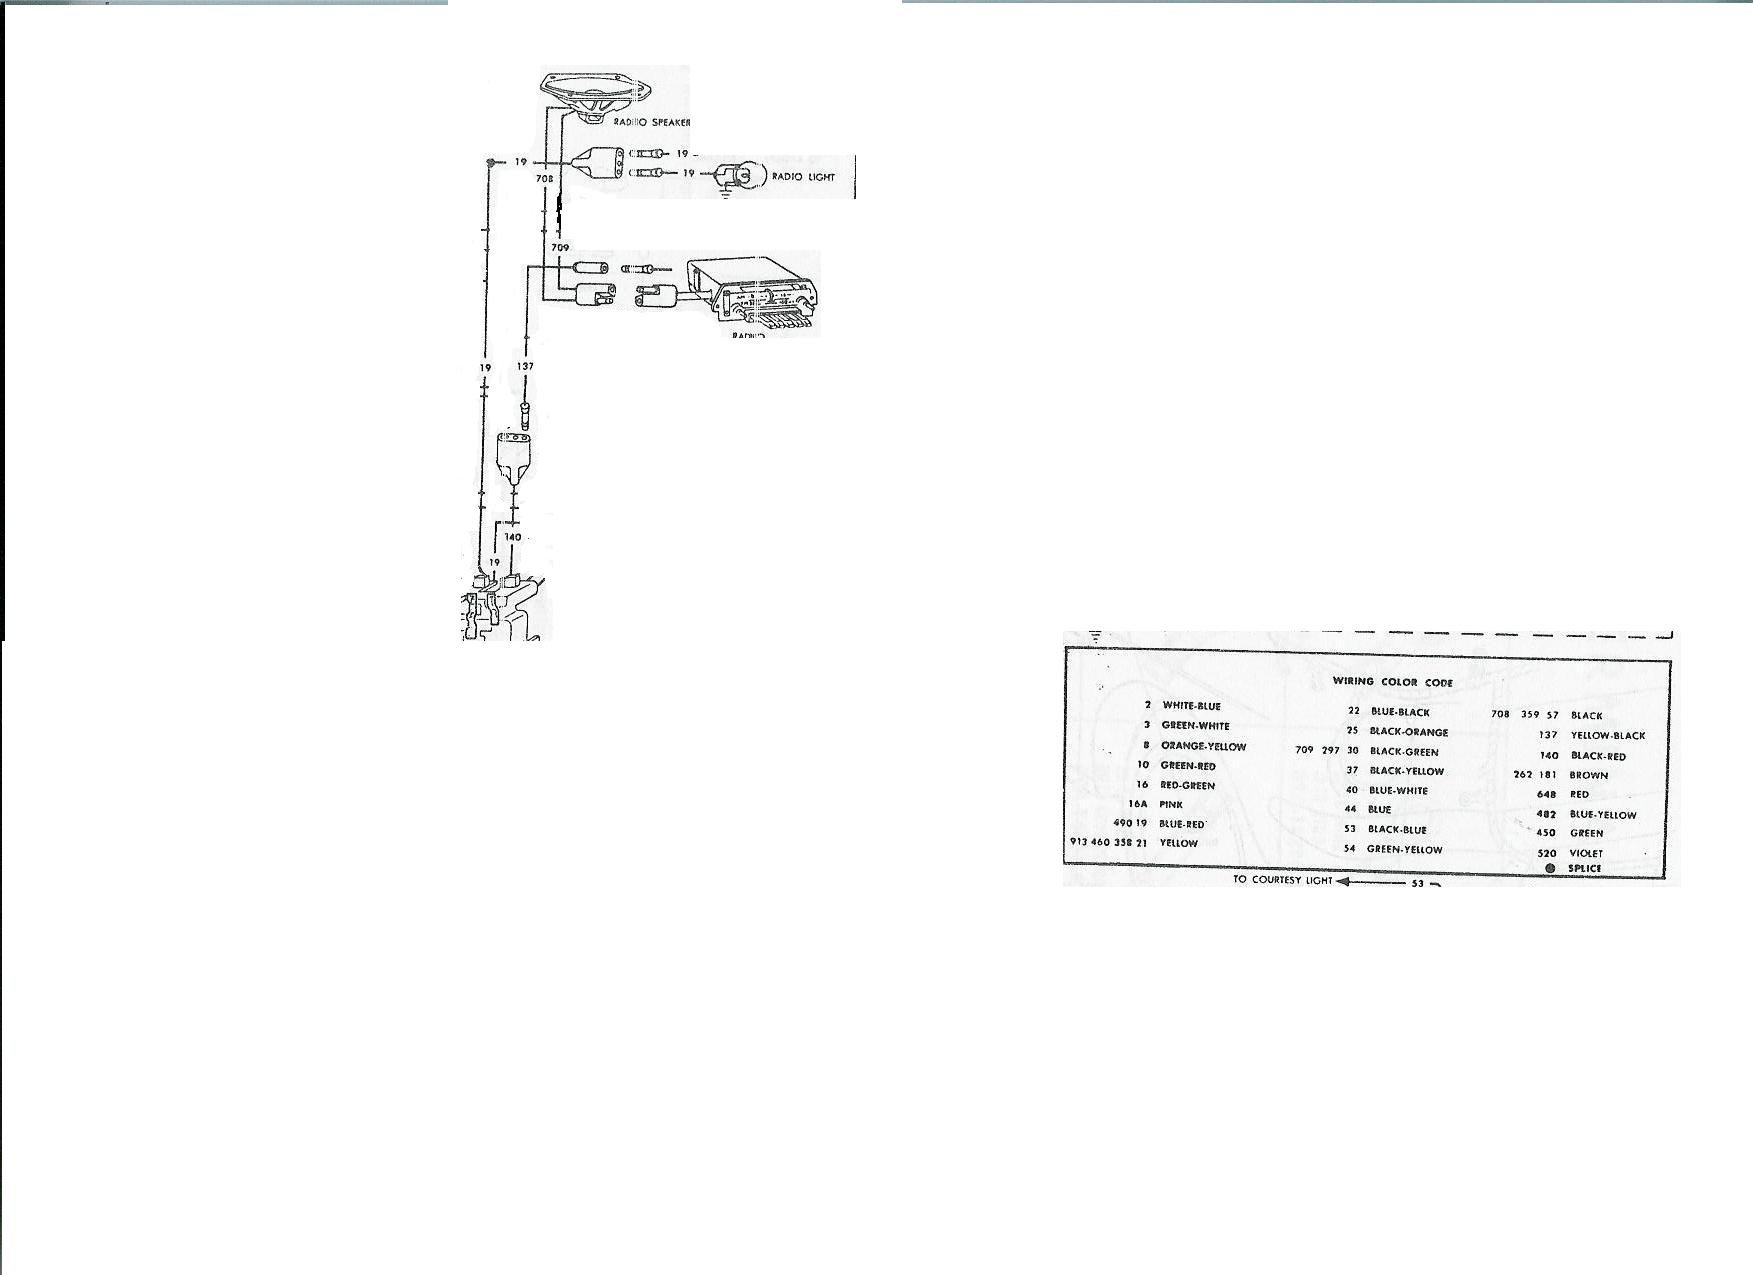 [DIAGRAM] 1979 Ford Radio Wiring Diagram FULL Version HD